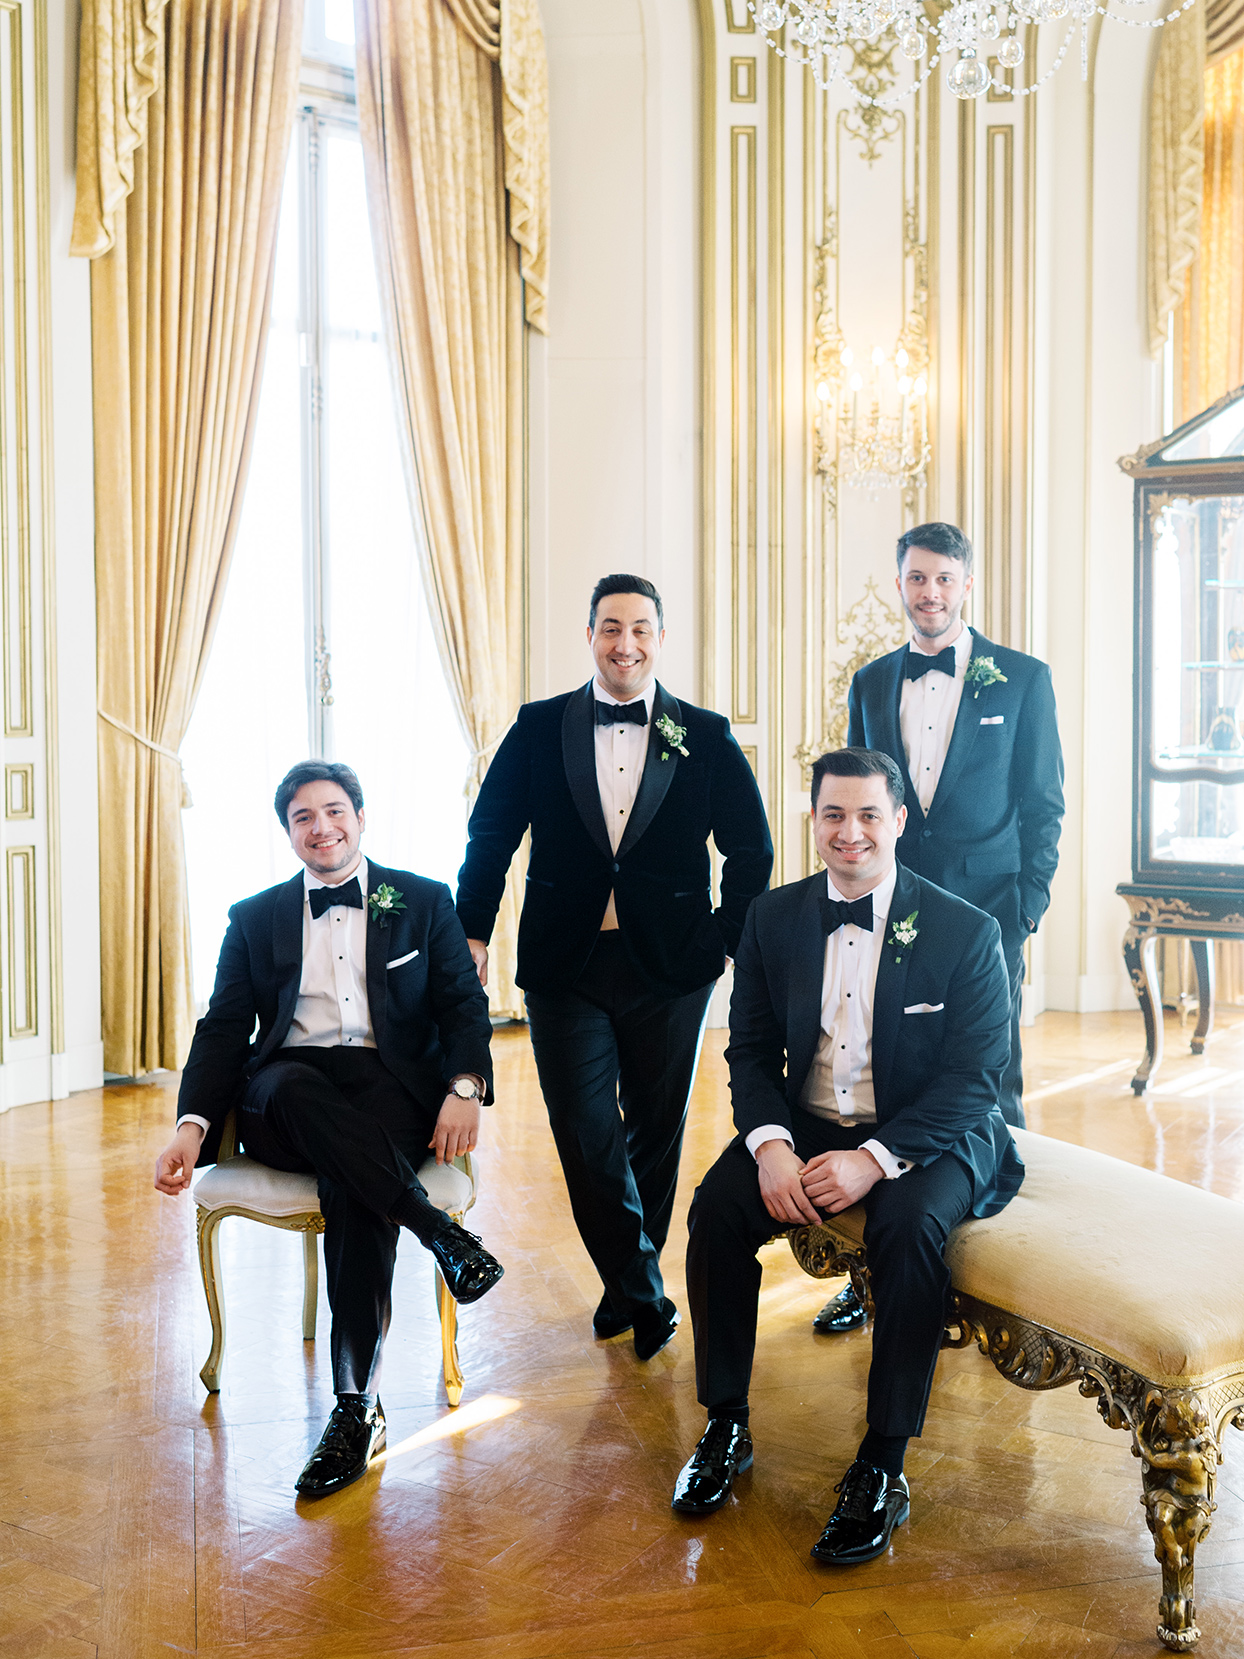 Groom and groomsmen in black tuxes from Monetti Tailoring